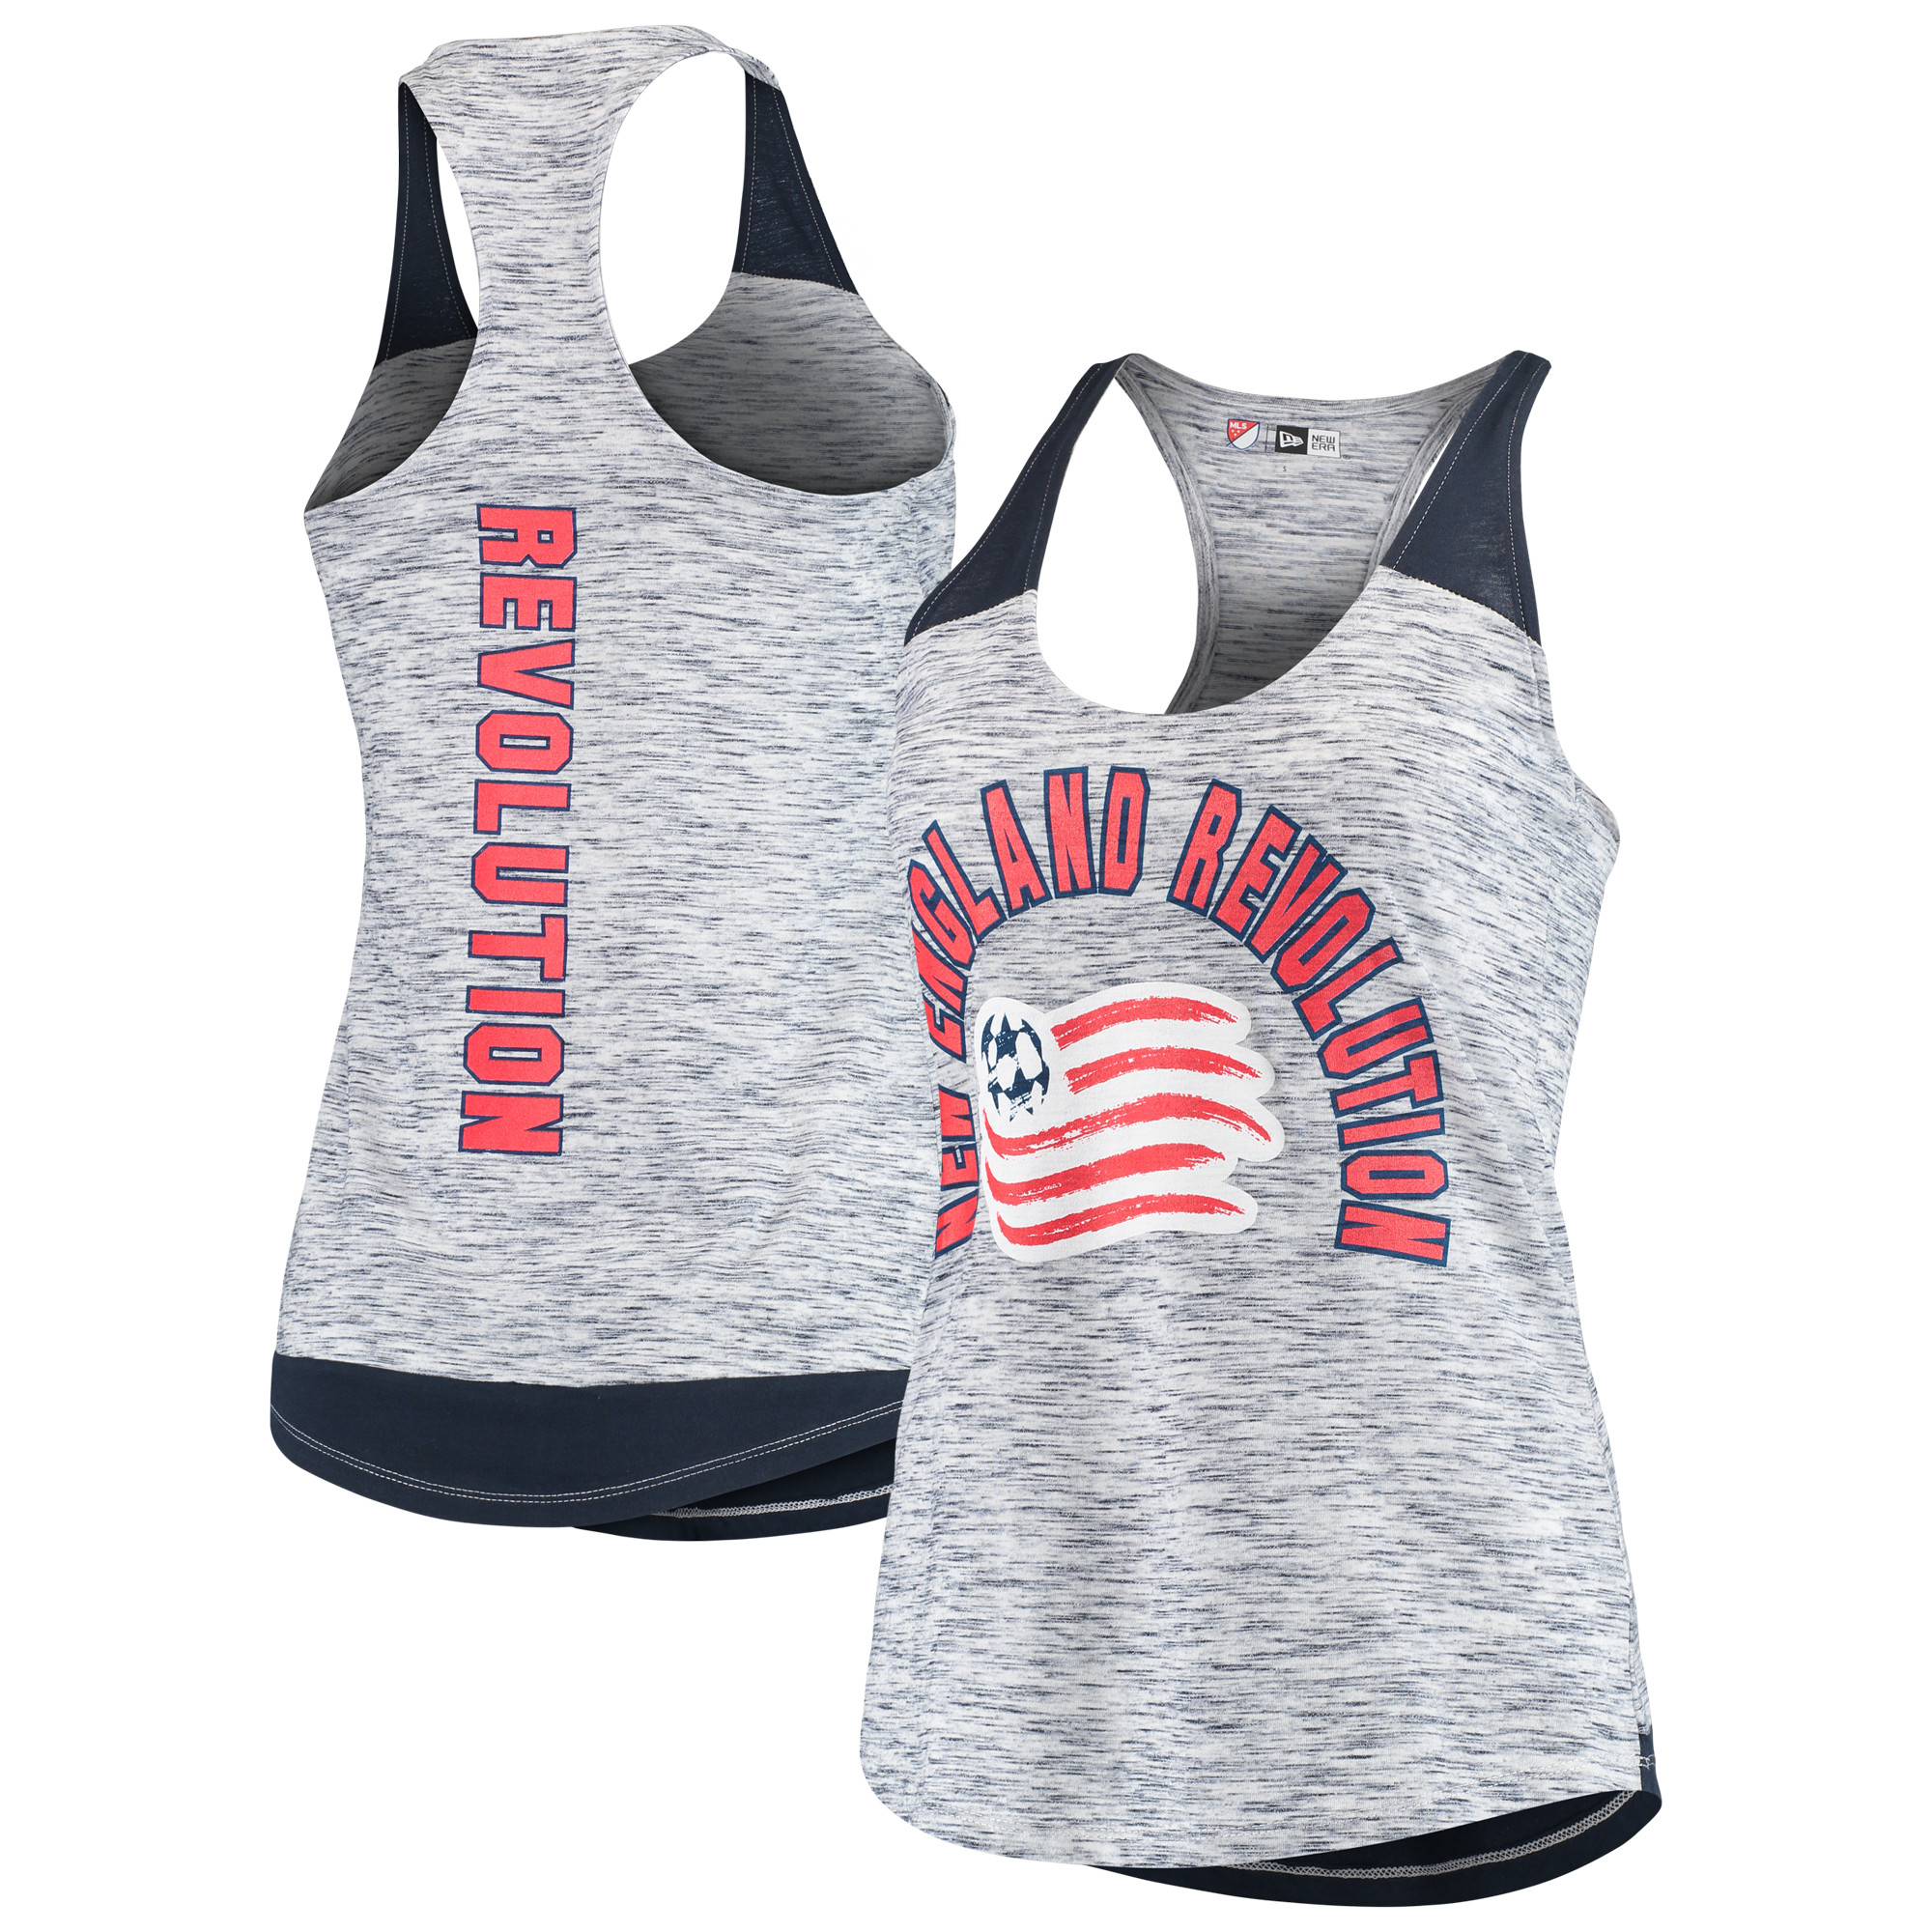 New England Revolution 5th & Ocean by New Era Women's Space Dye Contrast Inserts Racerback Tank Top - Navy